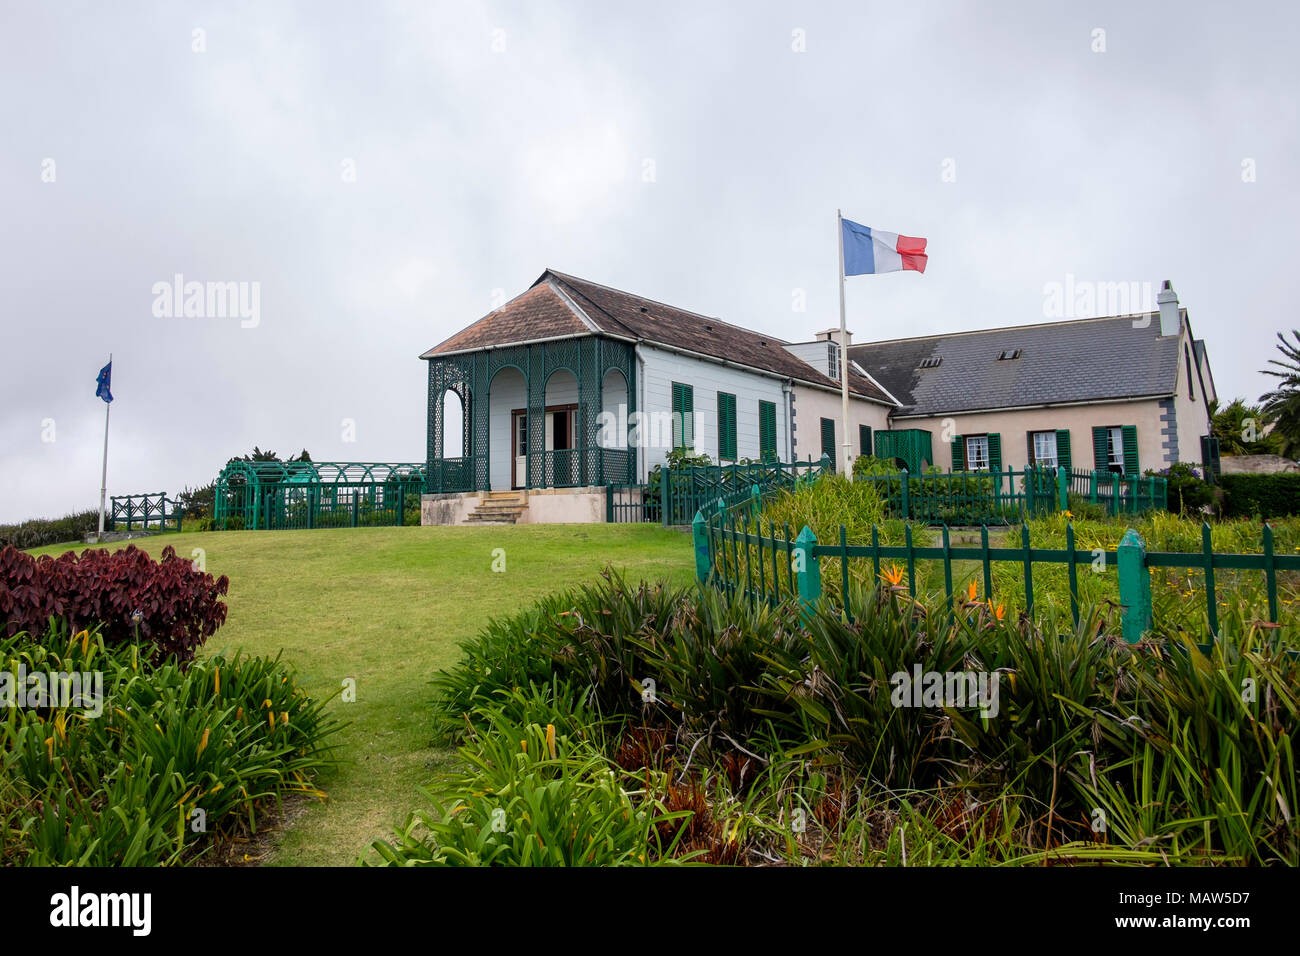 Longwood House, the final residence of Napoleon Bonaparte, during his exile on the island of Saint Helena. Stock Photo